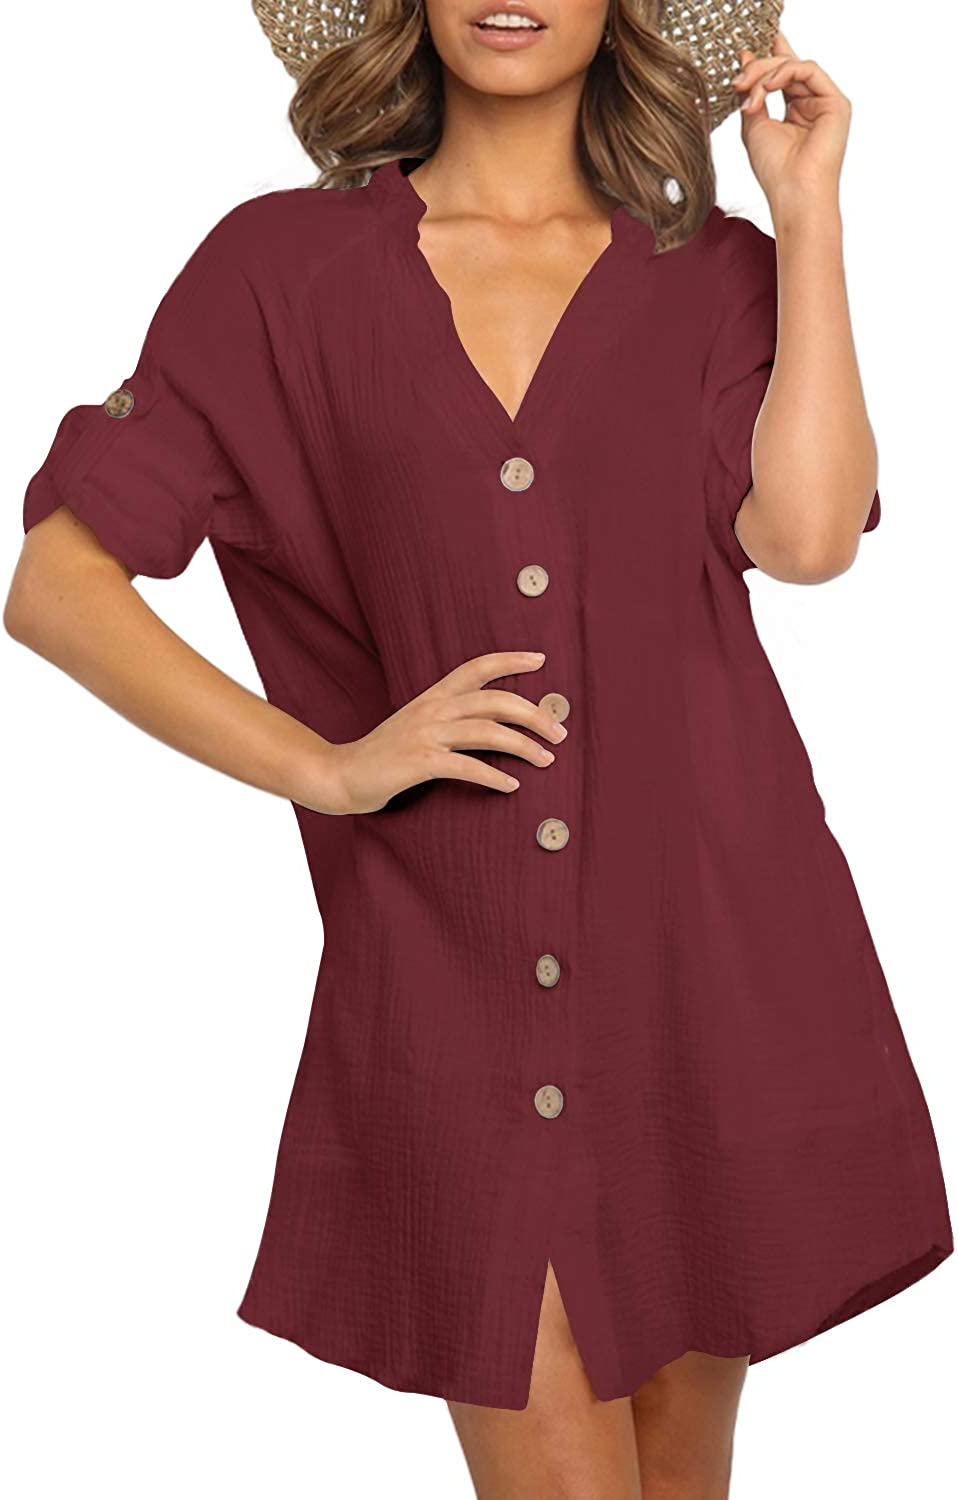 YOINS Womens Shirt Dresses Short Sleeves V Neck Button Down Blouse Casual Tunic Tops